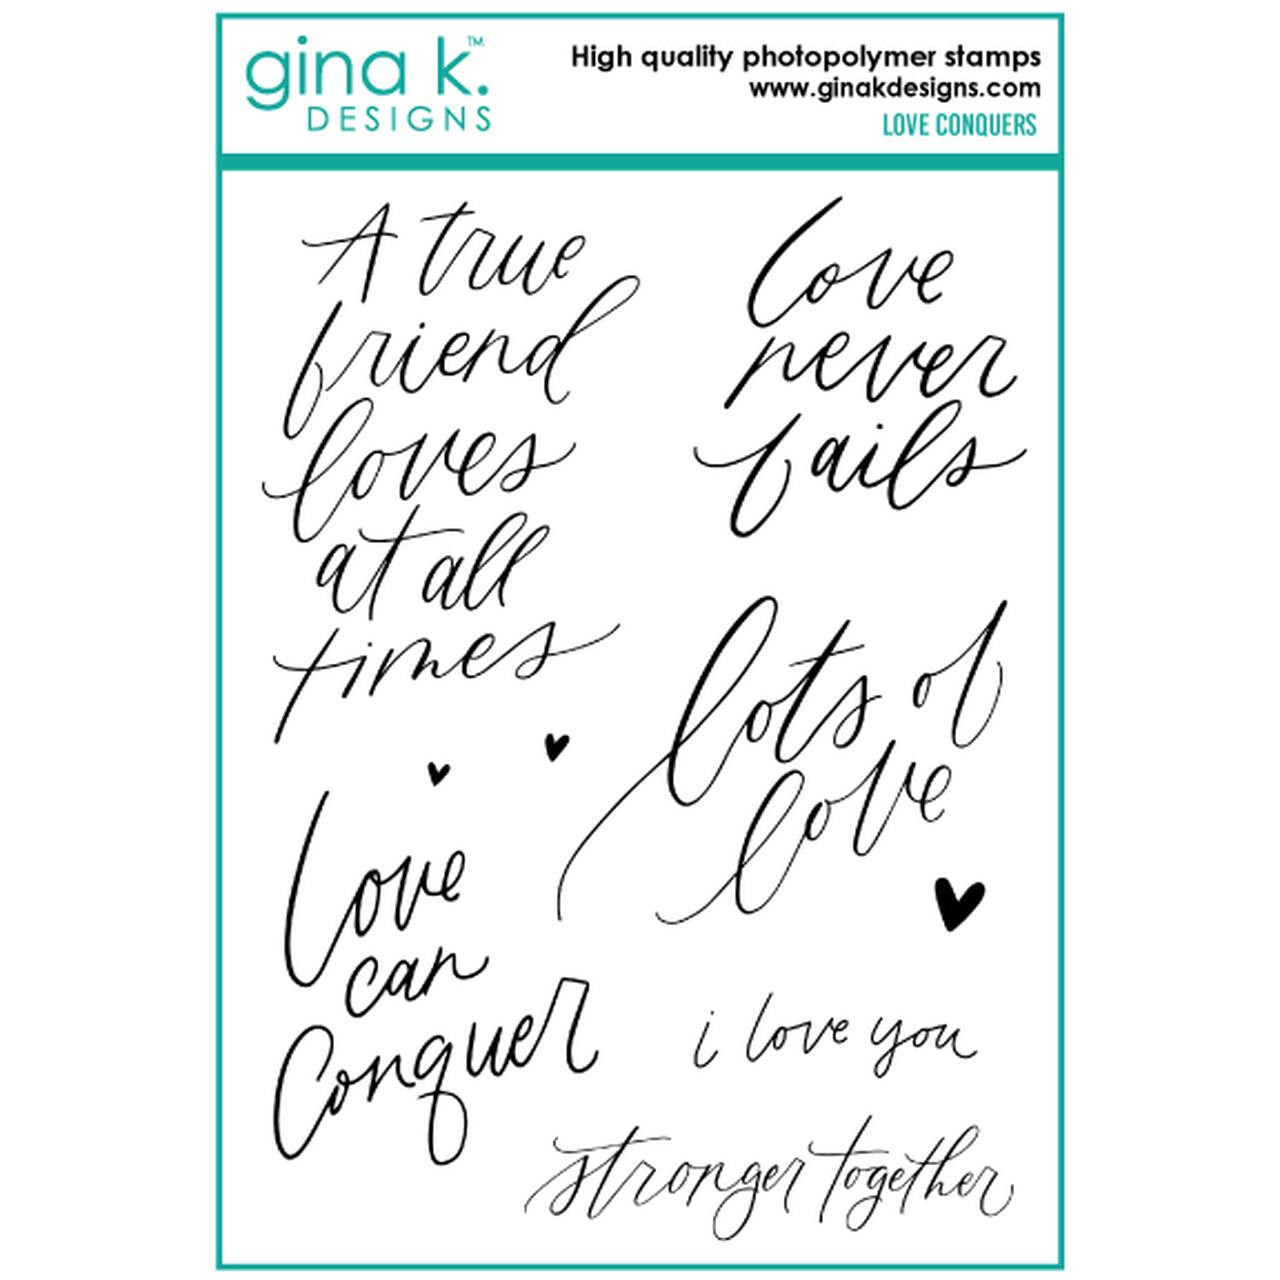 Love Conquers, Gina K Designs Clear Stamps - 609015526750